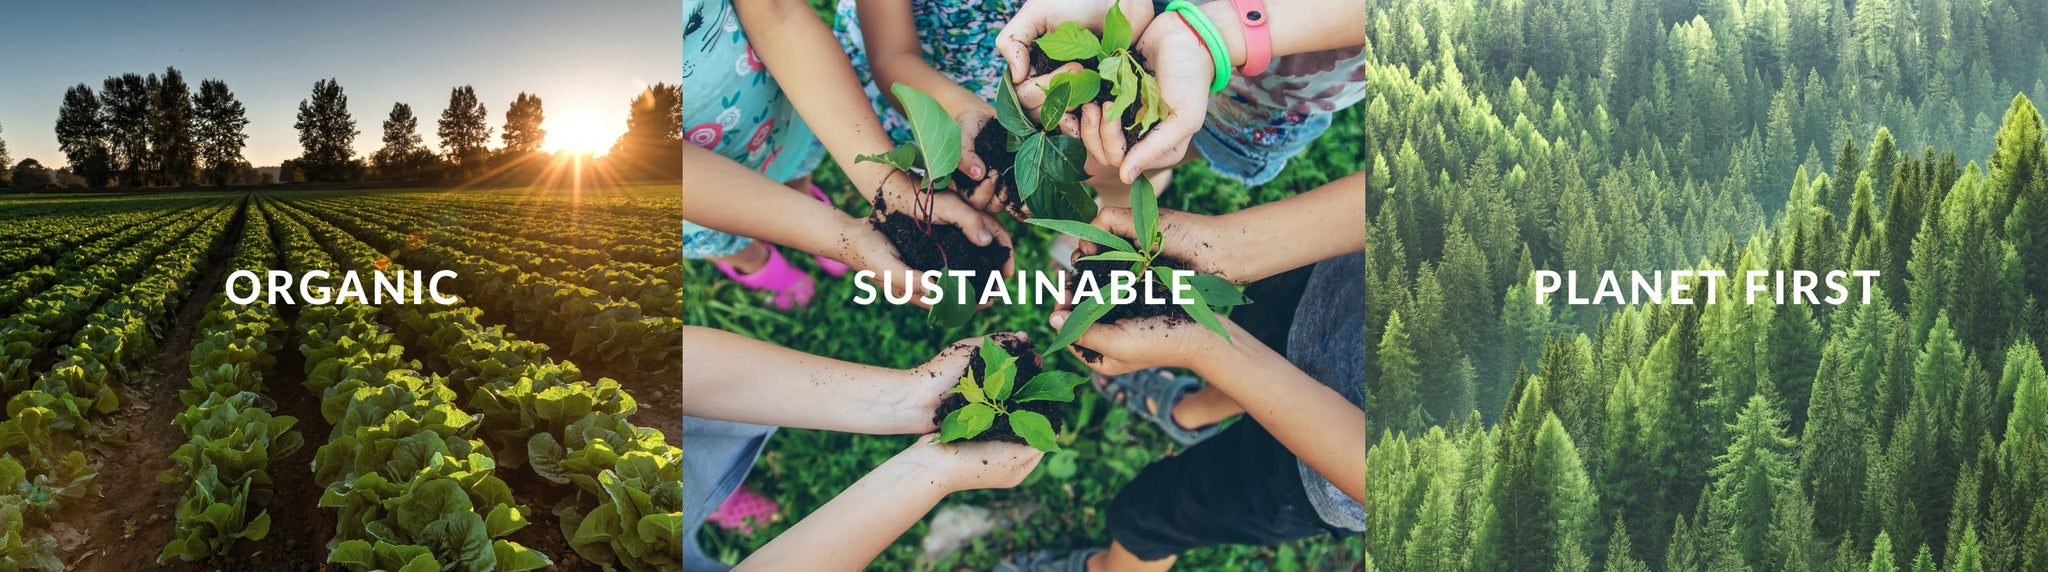 Organic, sustainable and planet first values